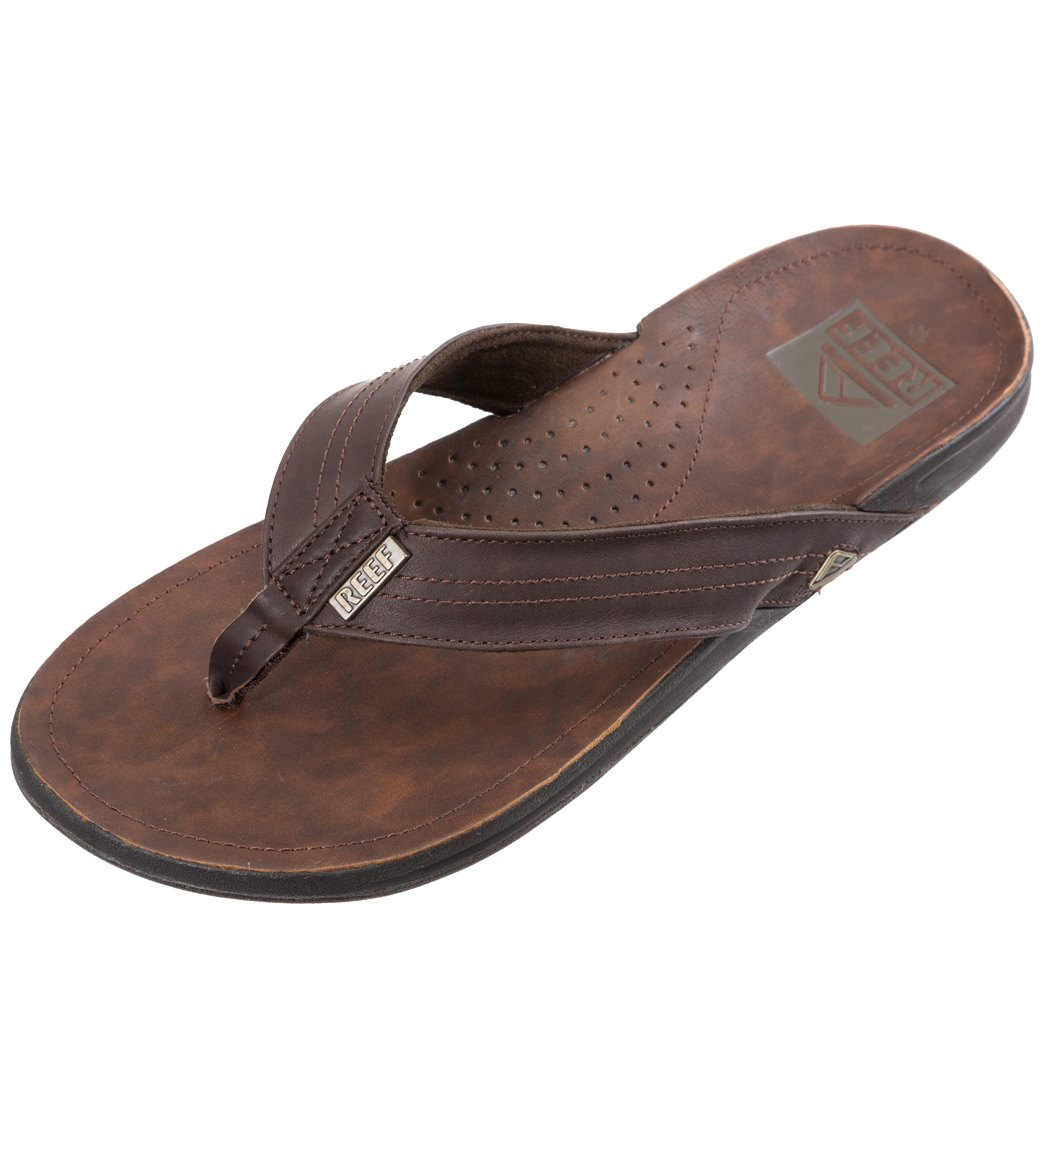 fd2239e771e1 Reef Men s J-Bay III Flip Flop at SwimOutlet.com - Free Shipping